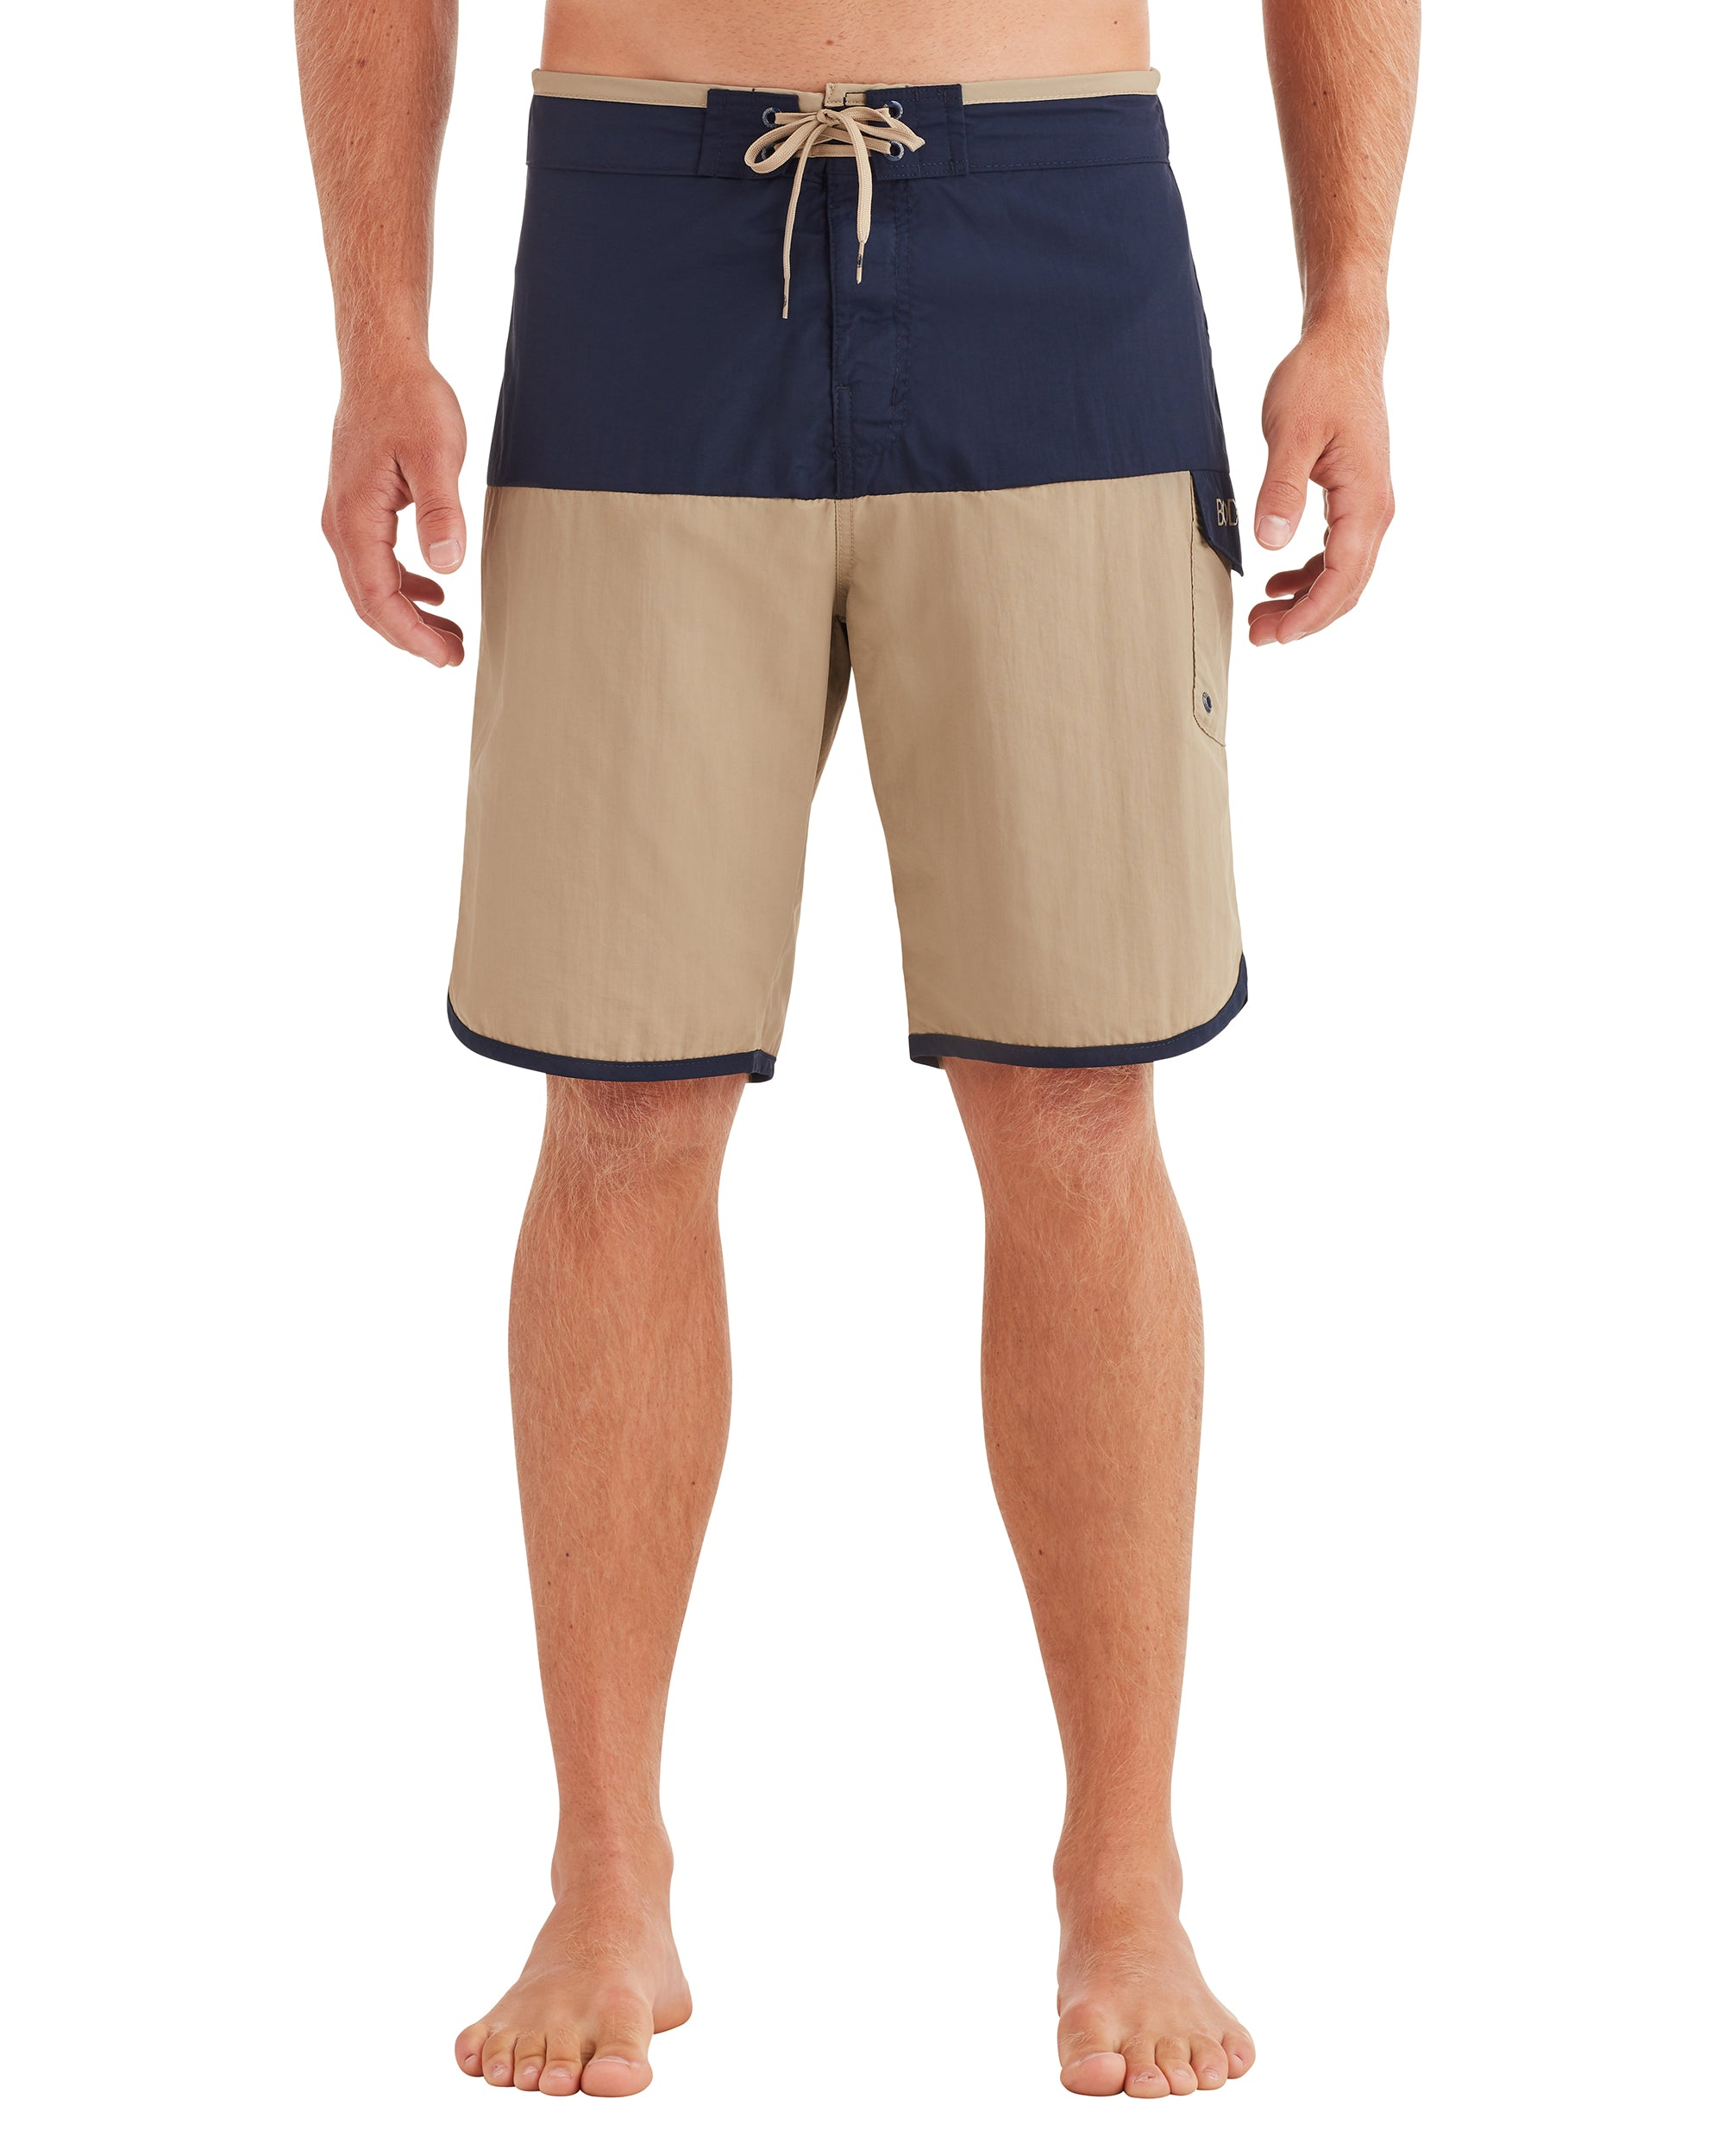 Men's Scallop Swim Short - Beige/Navy